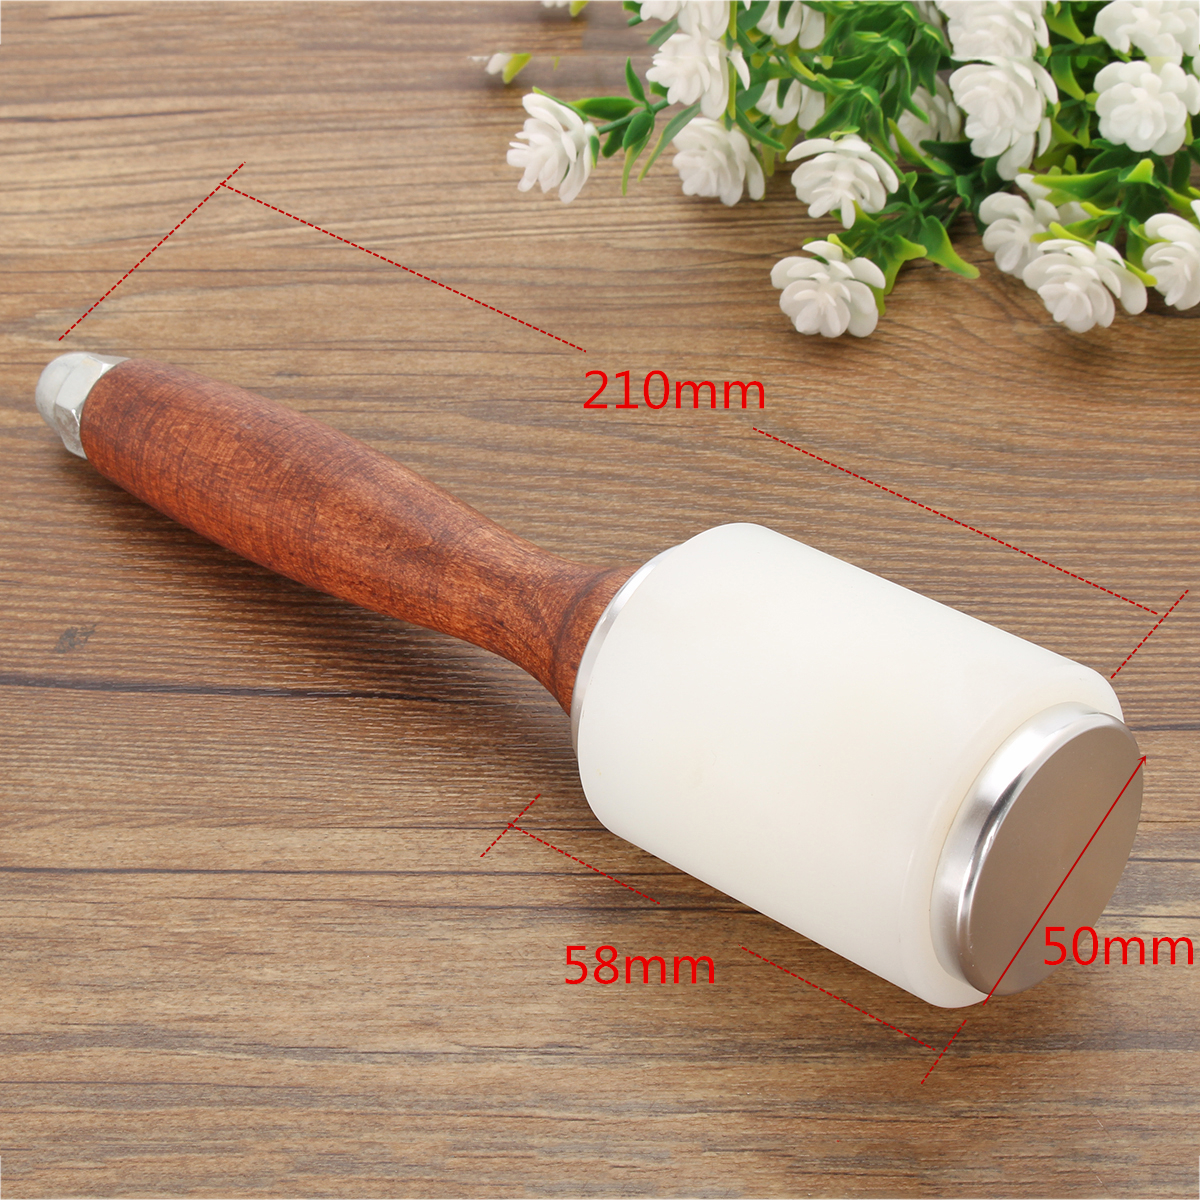 Wooden Handle Leather Nylon Carving Hammer Calico Carving Tool DIY Handle Craft